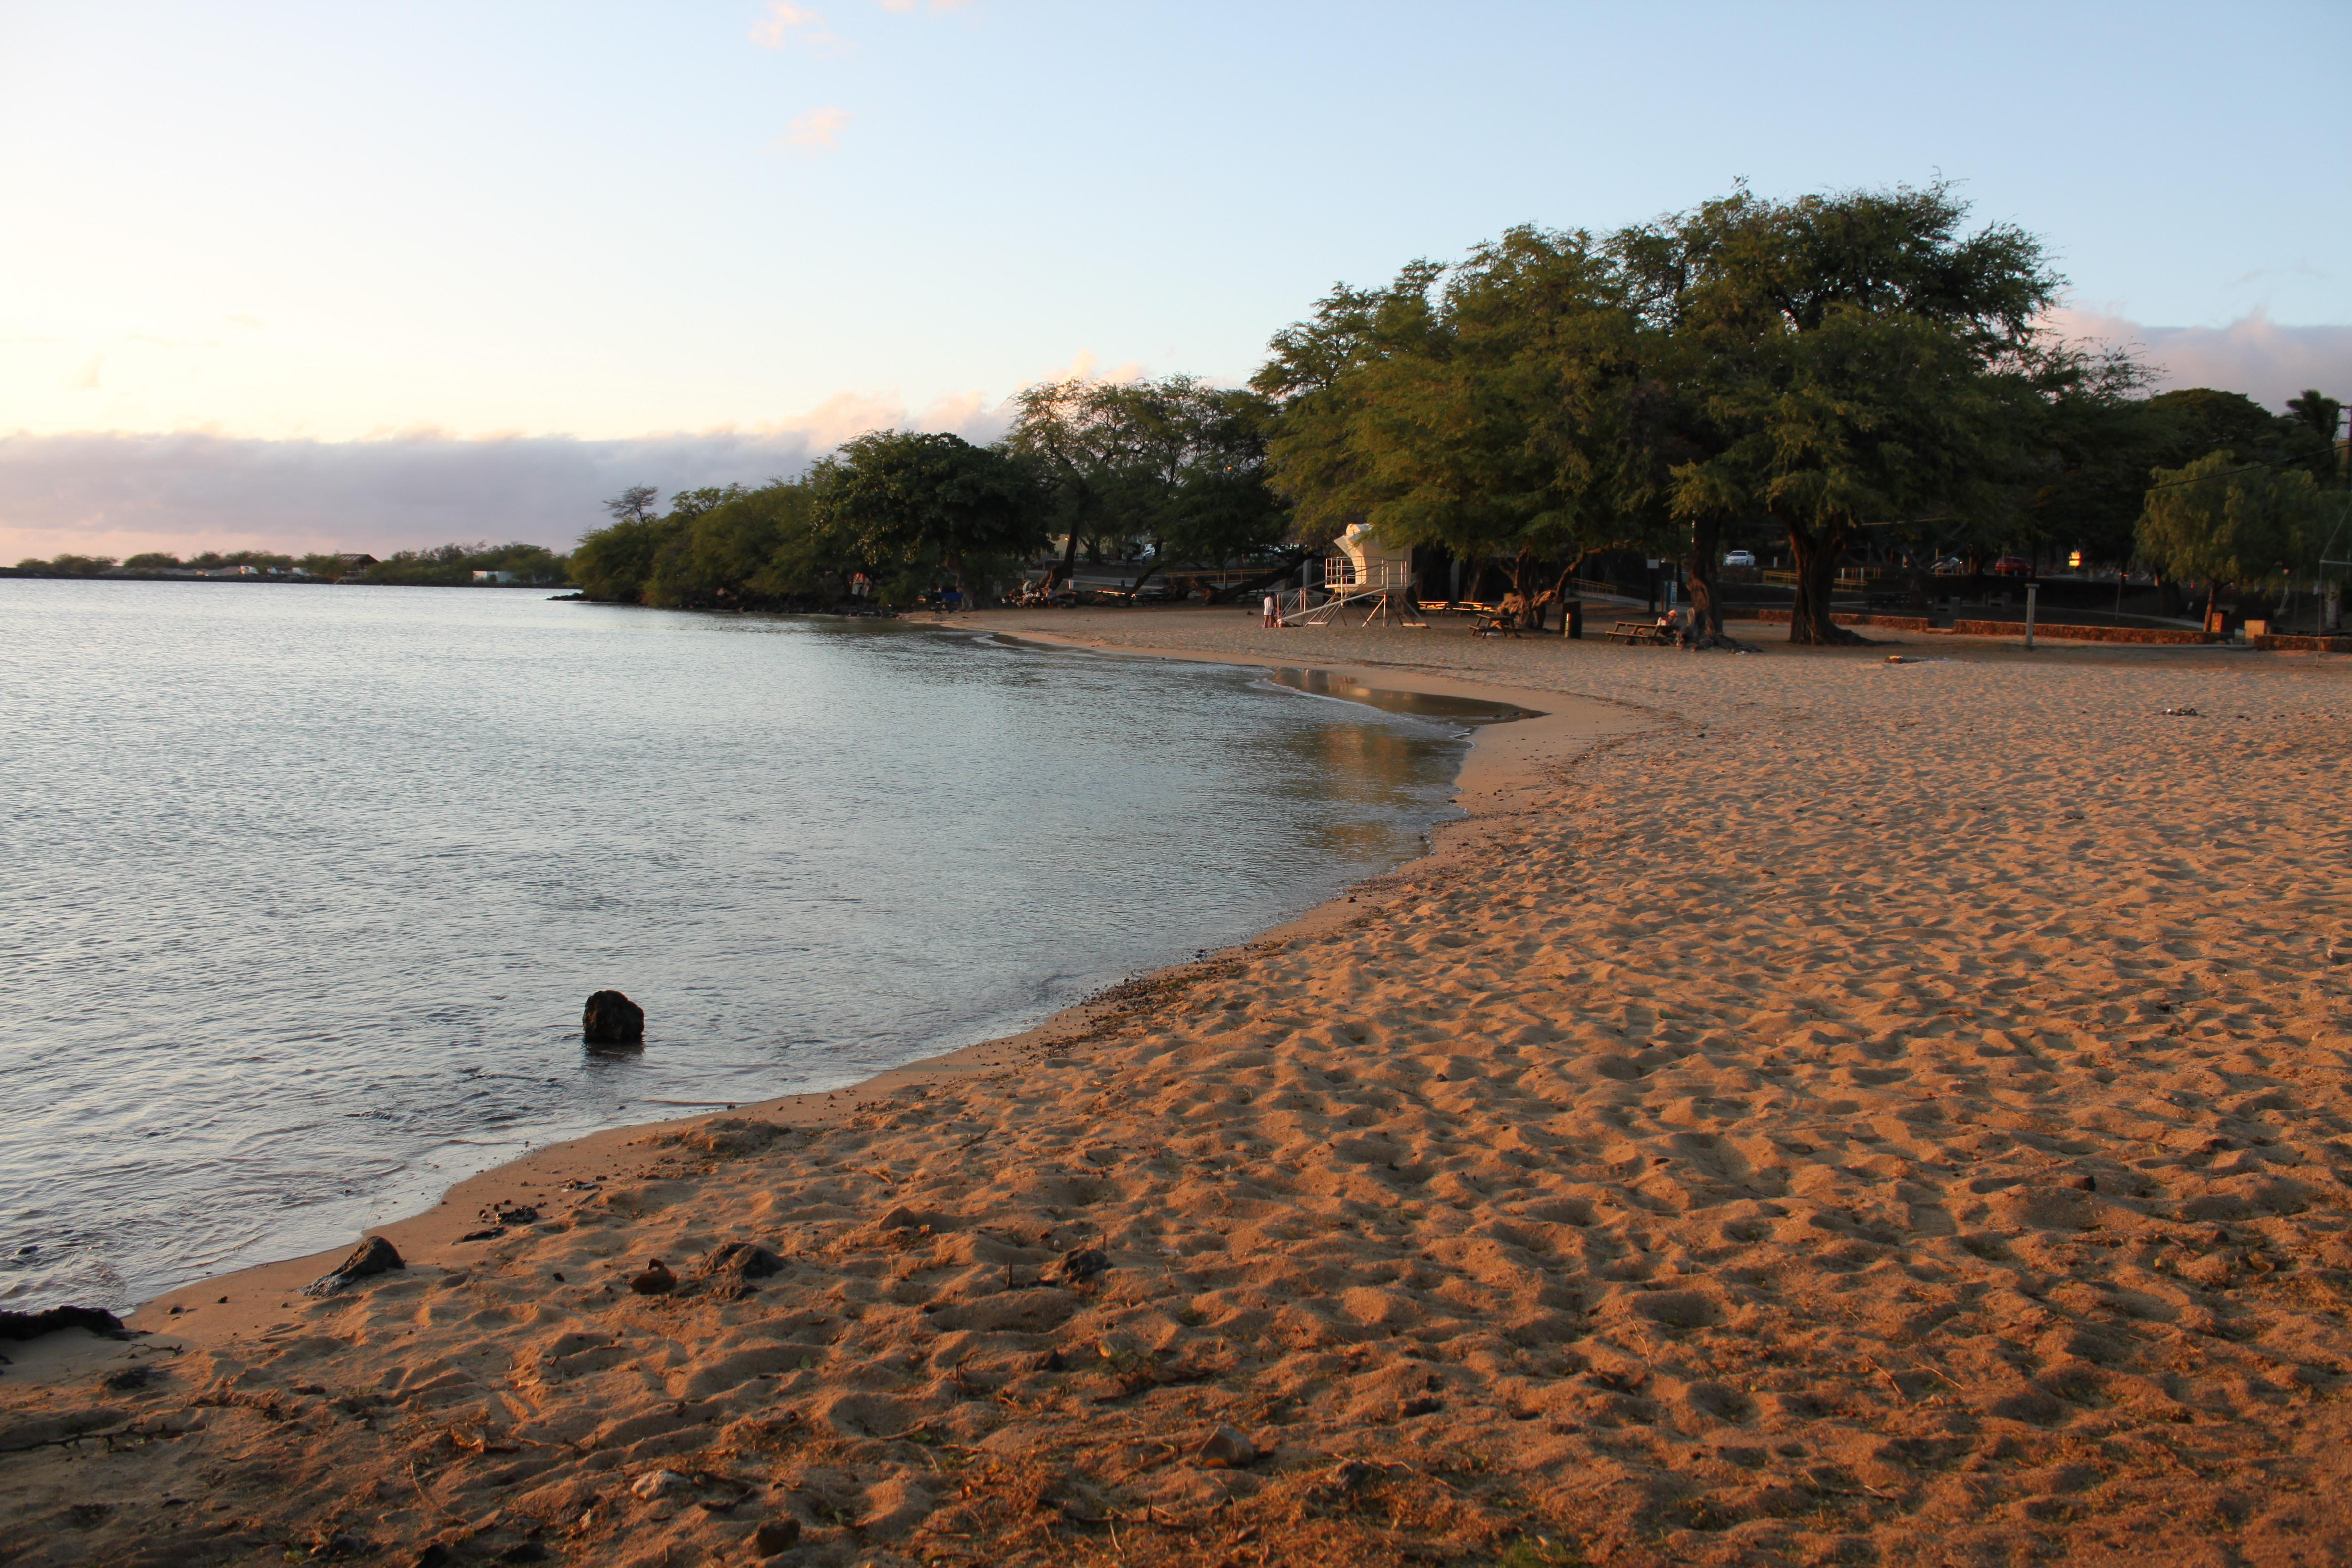 """Hawaii West Shore<br/>Photo <a href=""""//creativecommons.org/licences/by-sa/3.0/"""" class=""""cc-small"""" target=""""_blank""""><img typeof=""""foaf:Image"""" class=""""image-style-none"""" src=""""https://i.creativecommons.org/l/by-sa/3.0/80x15.png"""" width=""""80px"""" height=""""15px"""" alt=""""Creative Commons Licence"""" /></a> <a href=""""http://www.flickr.com/photos/80547277@N00/4676185999"""">Eli Duke</a>"""